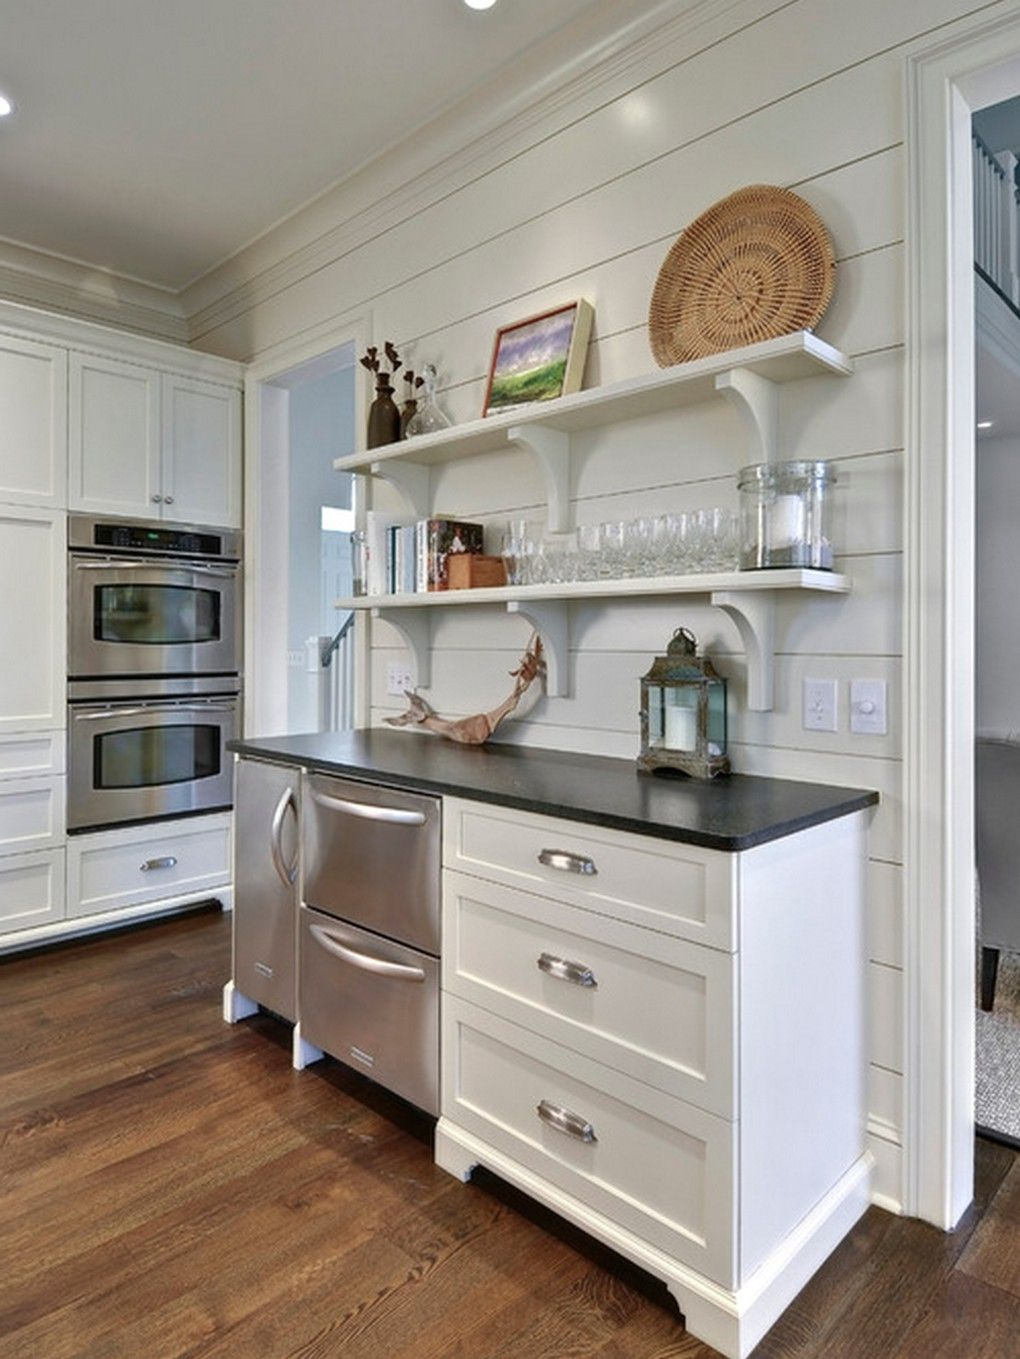 Kitchen Cabinets Columbus Ohio Industrial Kitchens Eclectic Kitchens Kitchen Storage And Kitchen Design Ideas Eclectic Kitchen Kitchen Design Kitchen Cabinets